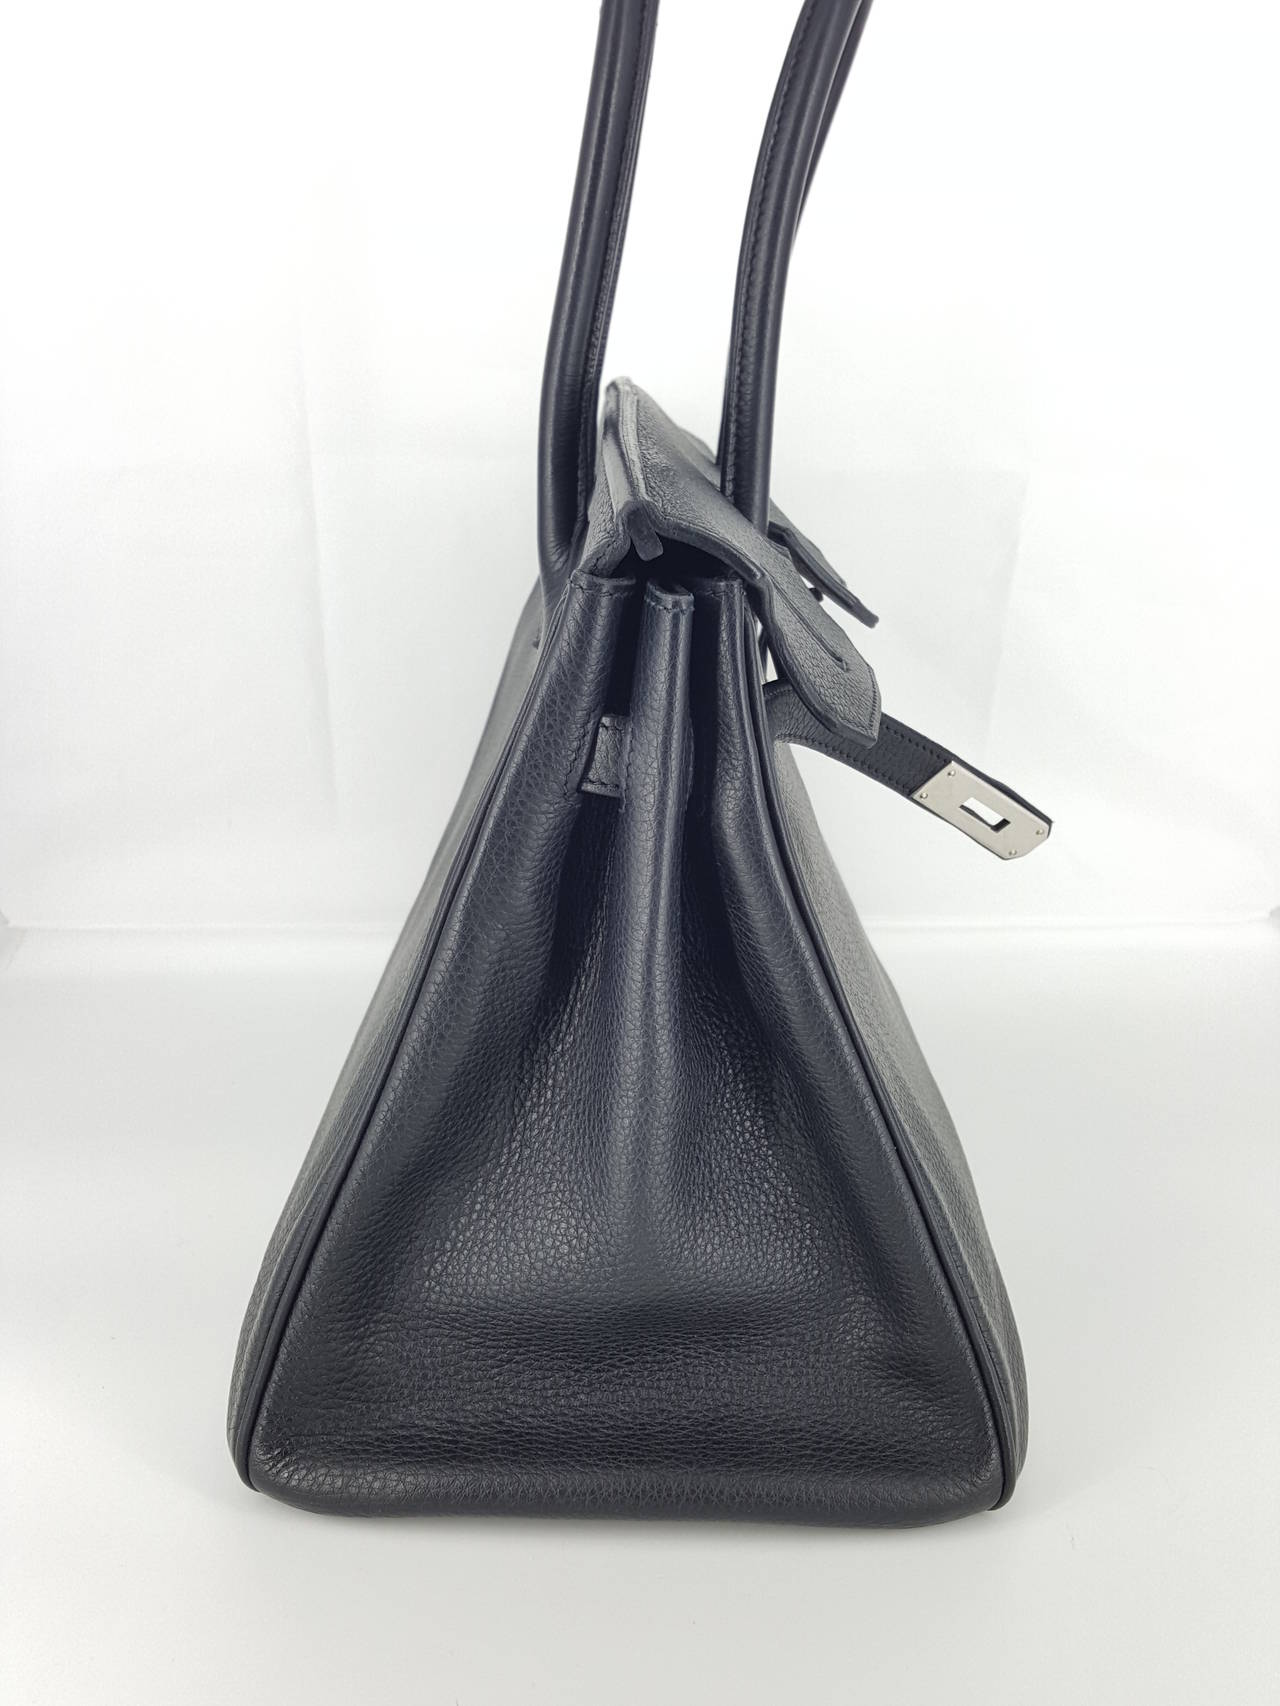 Gray HERMES Birkin 35 CM In Black Clemence Leather With Palladium Hardware. For Sale